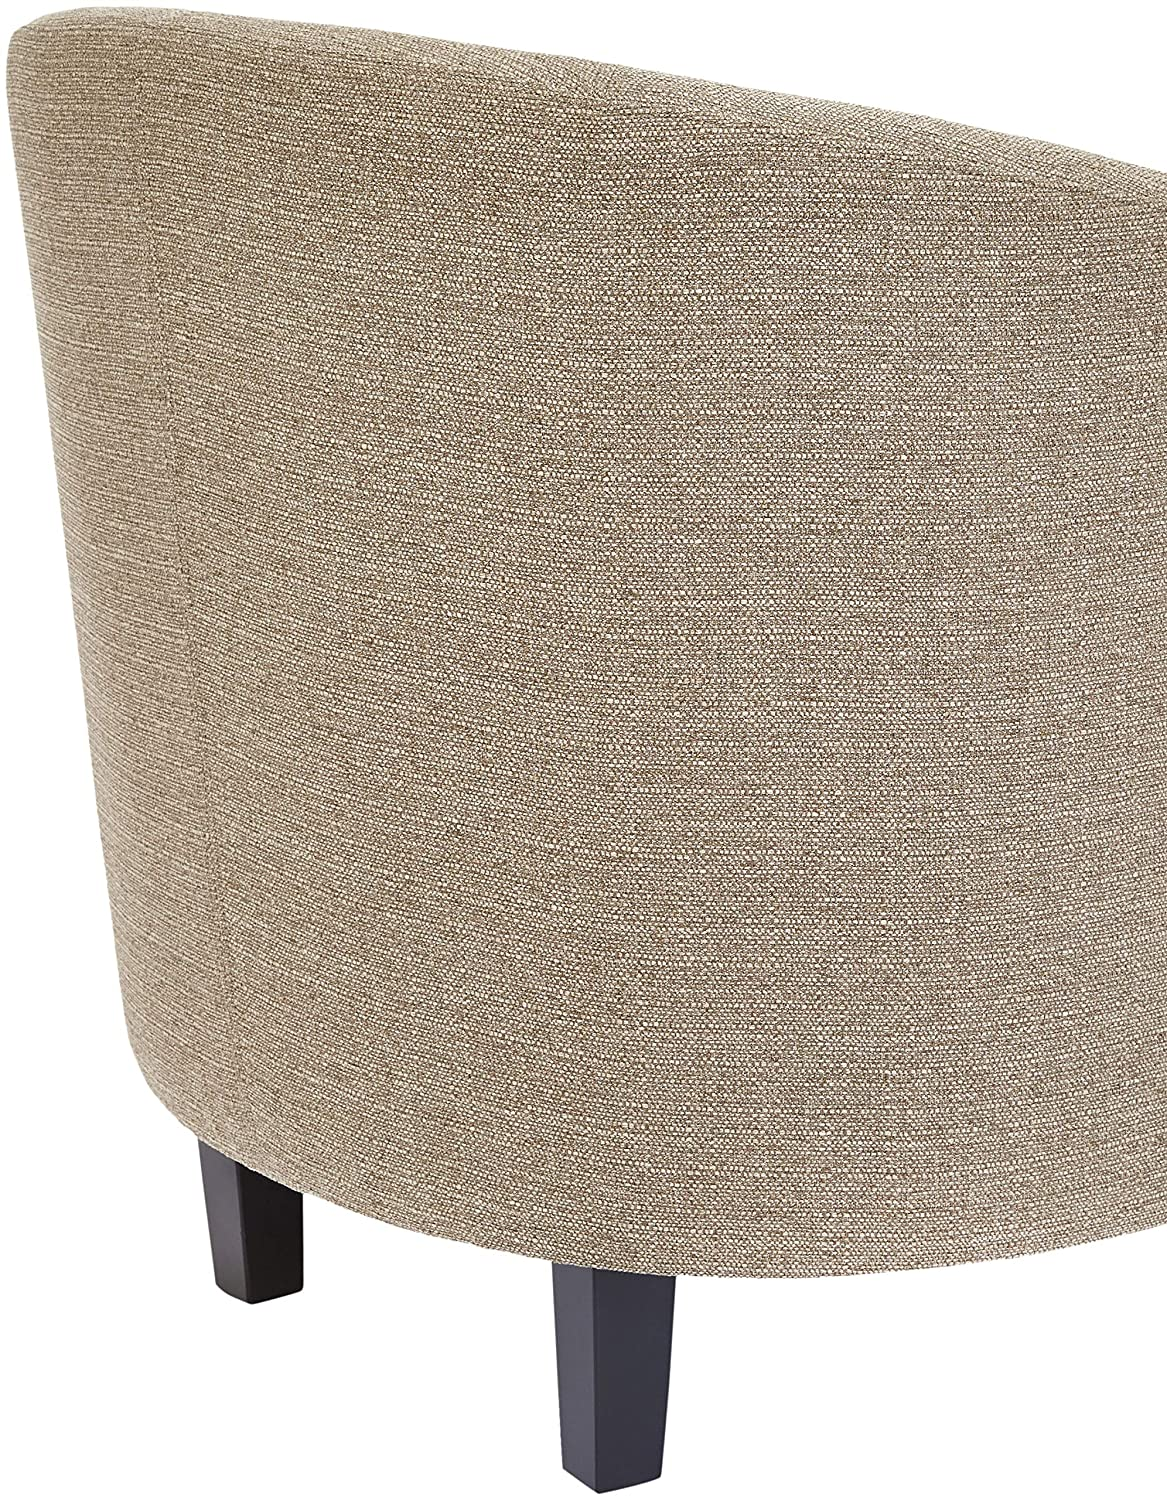 Red Hook Galia Linen-Look-Upholstery Accent Tub Chair Sandstone